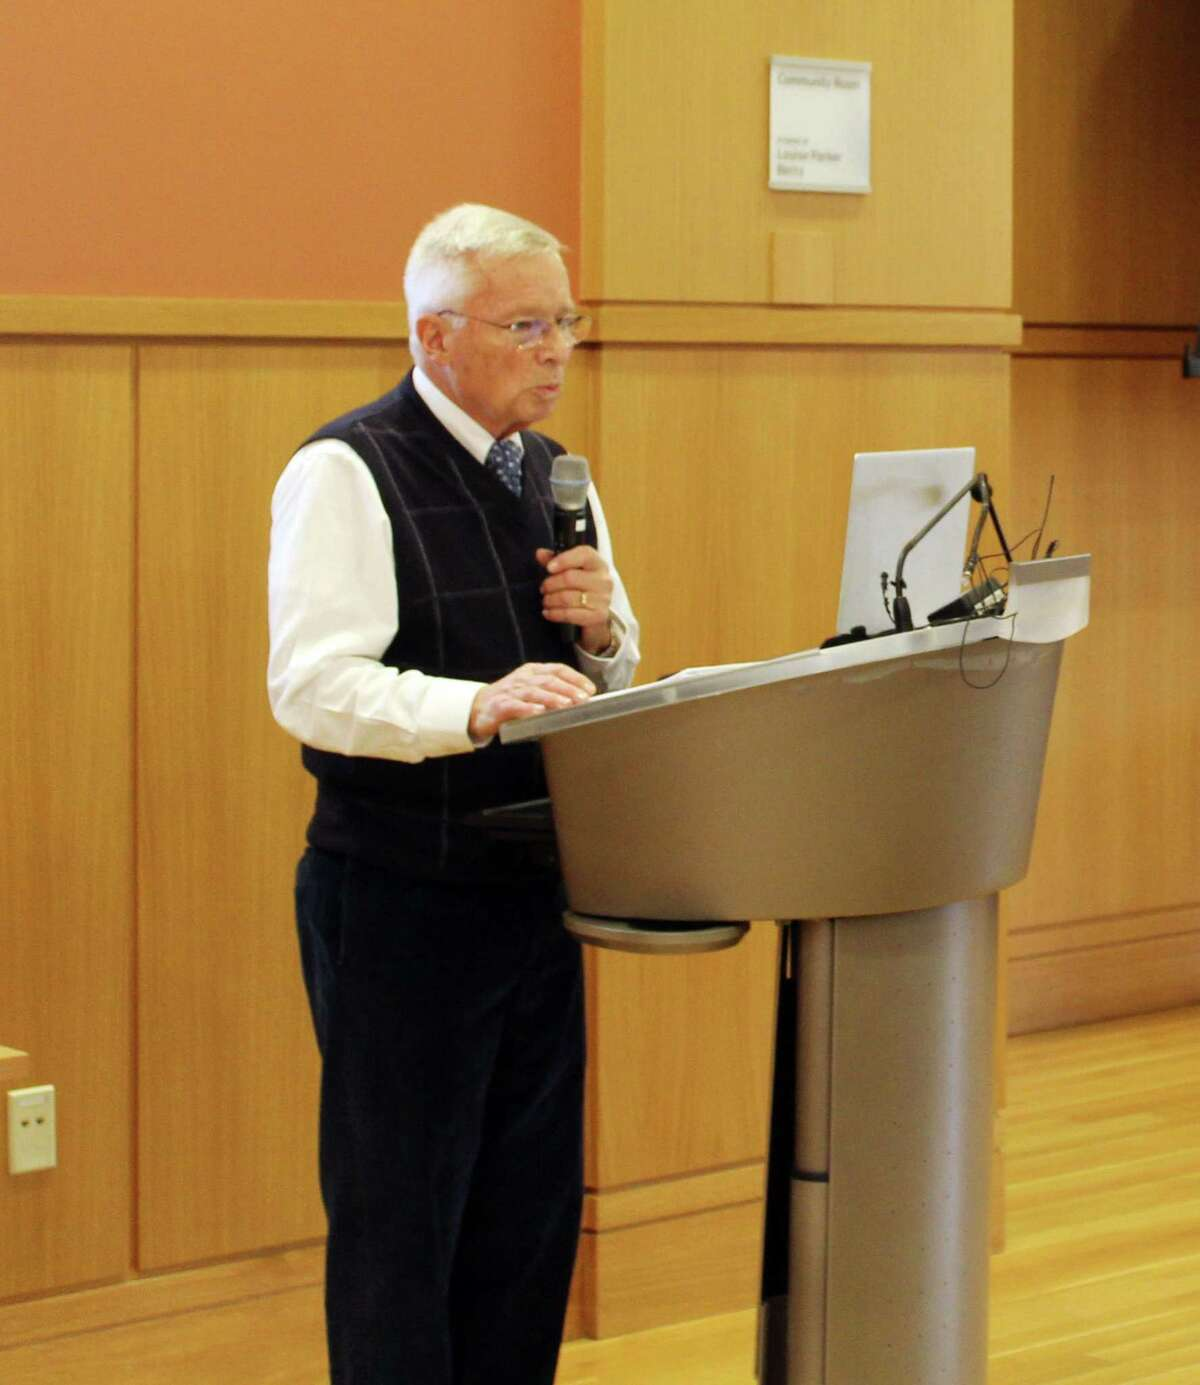 Peter Eder, a founding member of At Home in Darien, addresses members at the group's annual meeting at the library in Darien, Conn. on Dec. 13, 2017